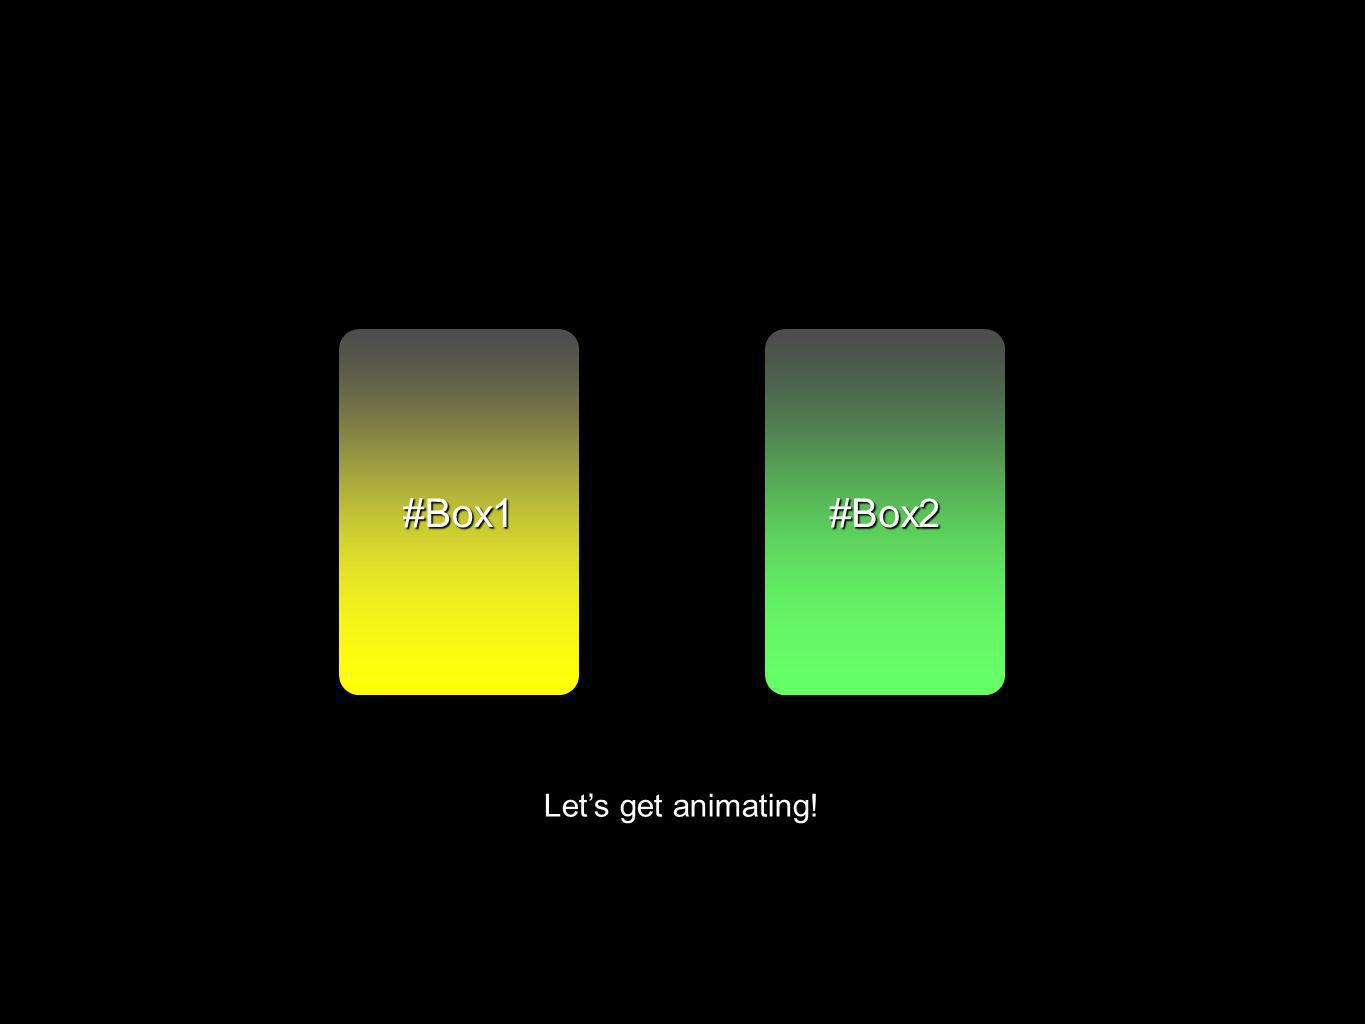 #Box2#Box1 Lets get animating!